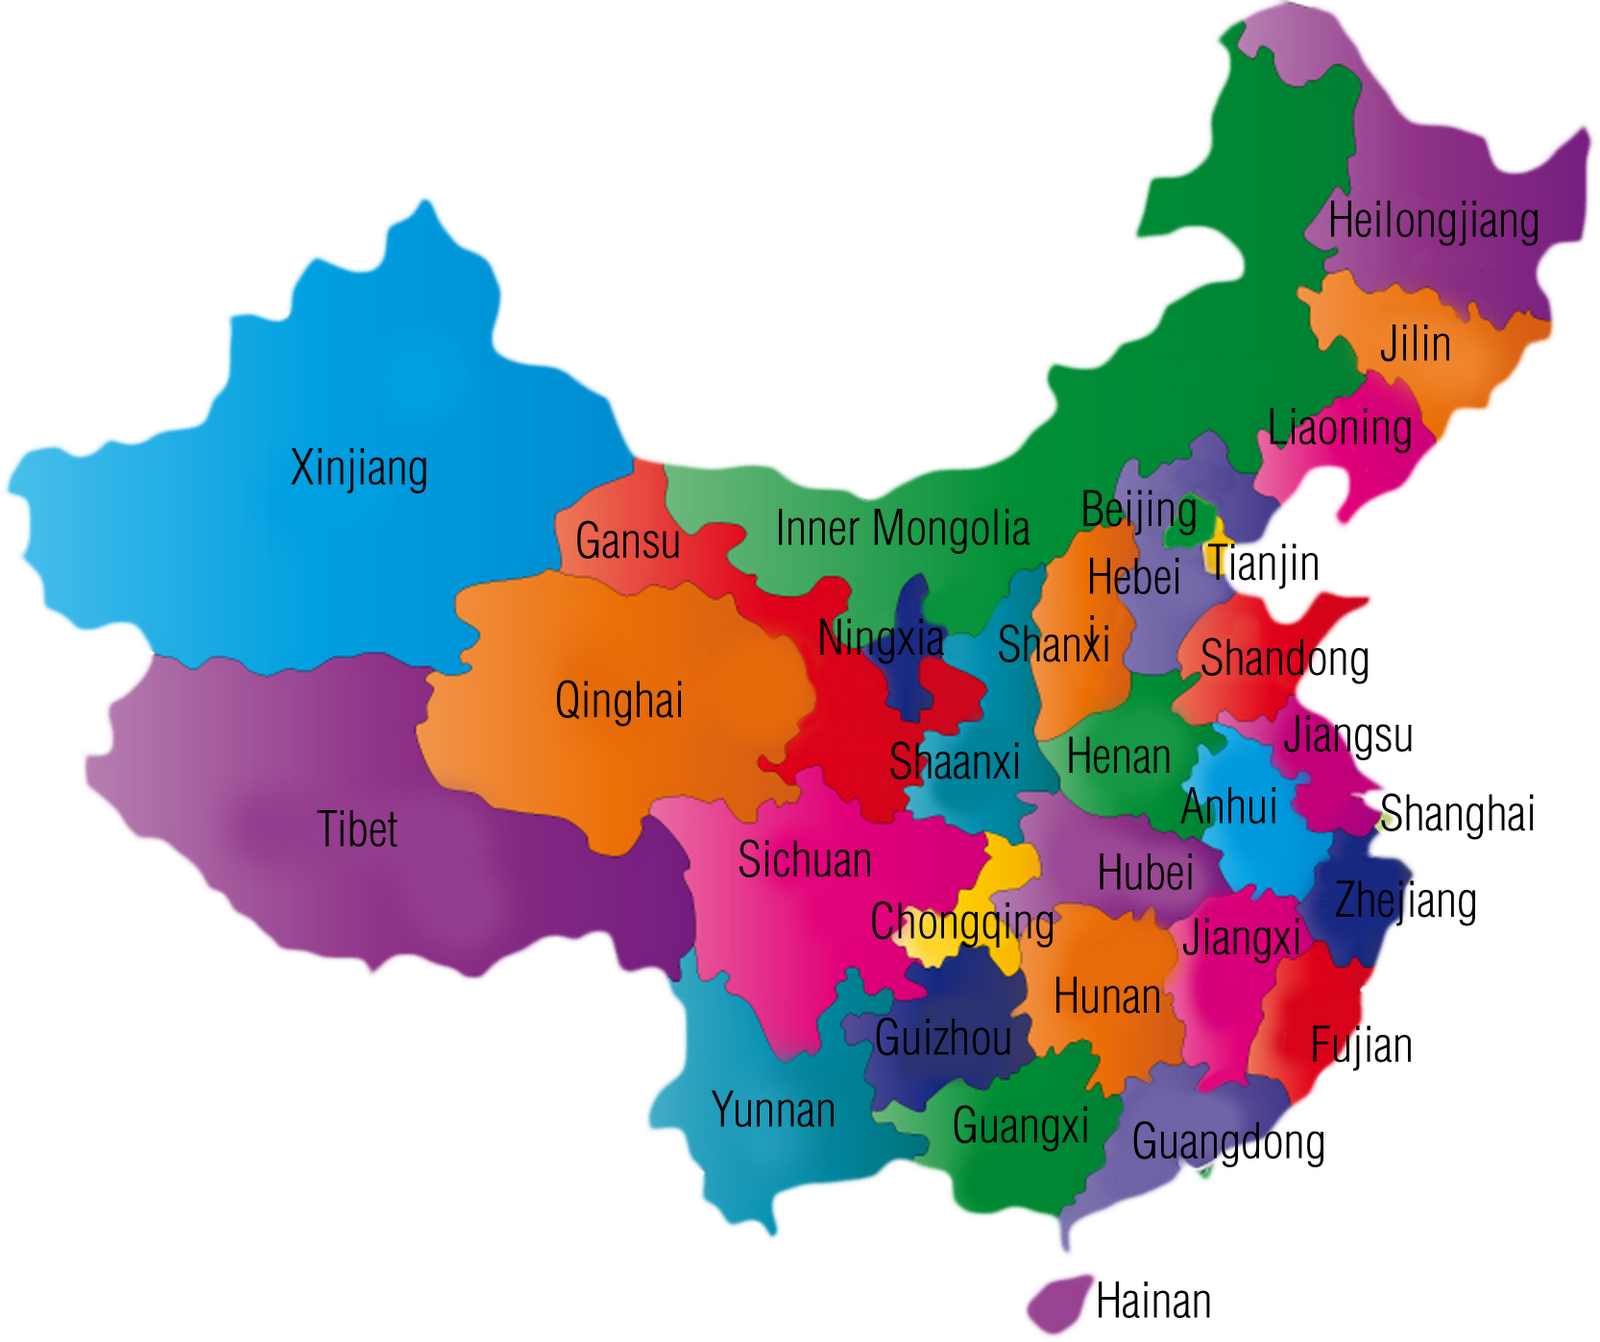 colorful_china_map_with_provinces.png